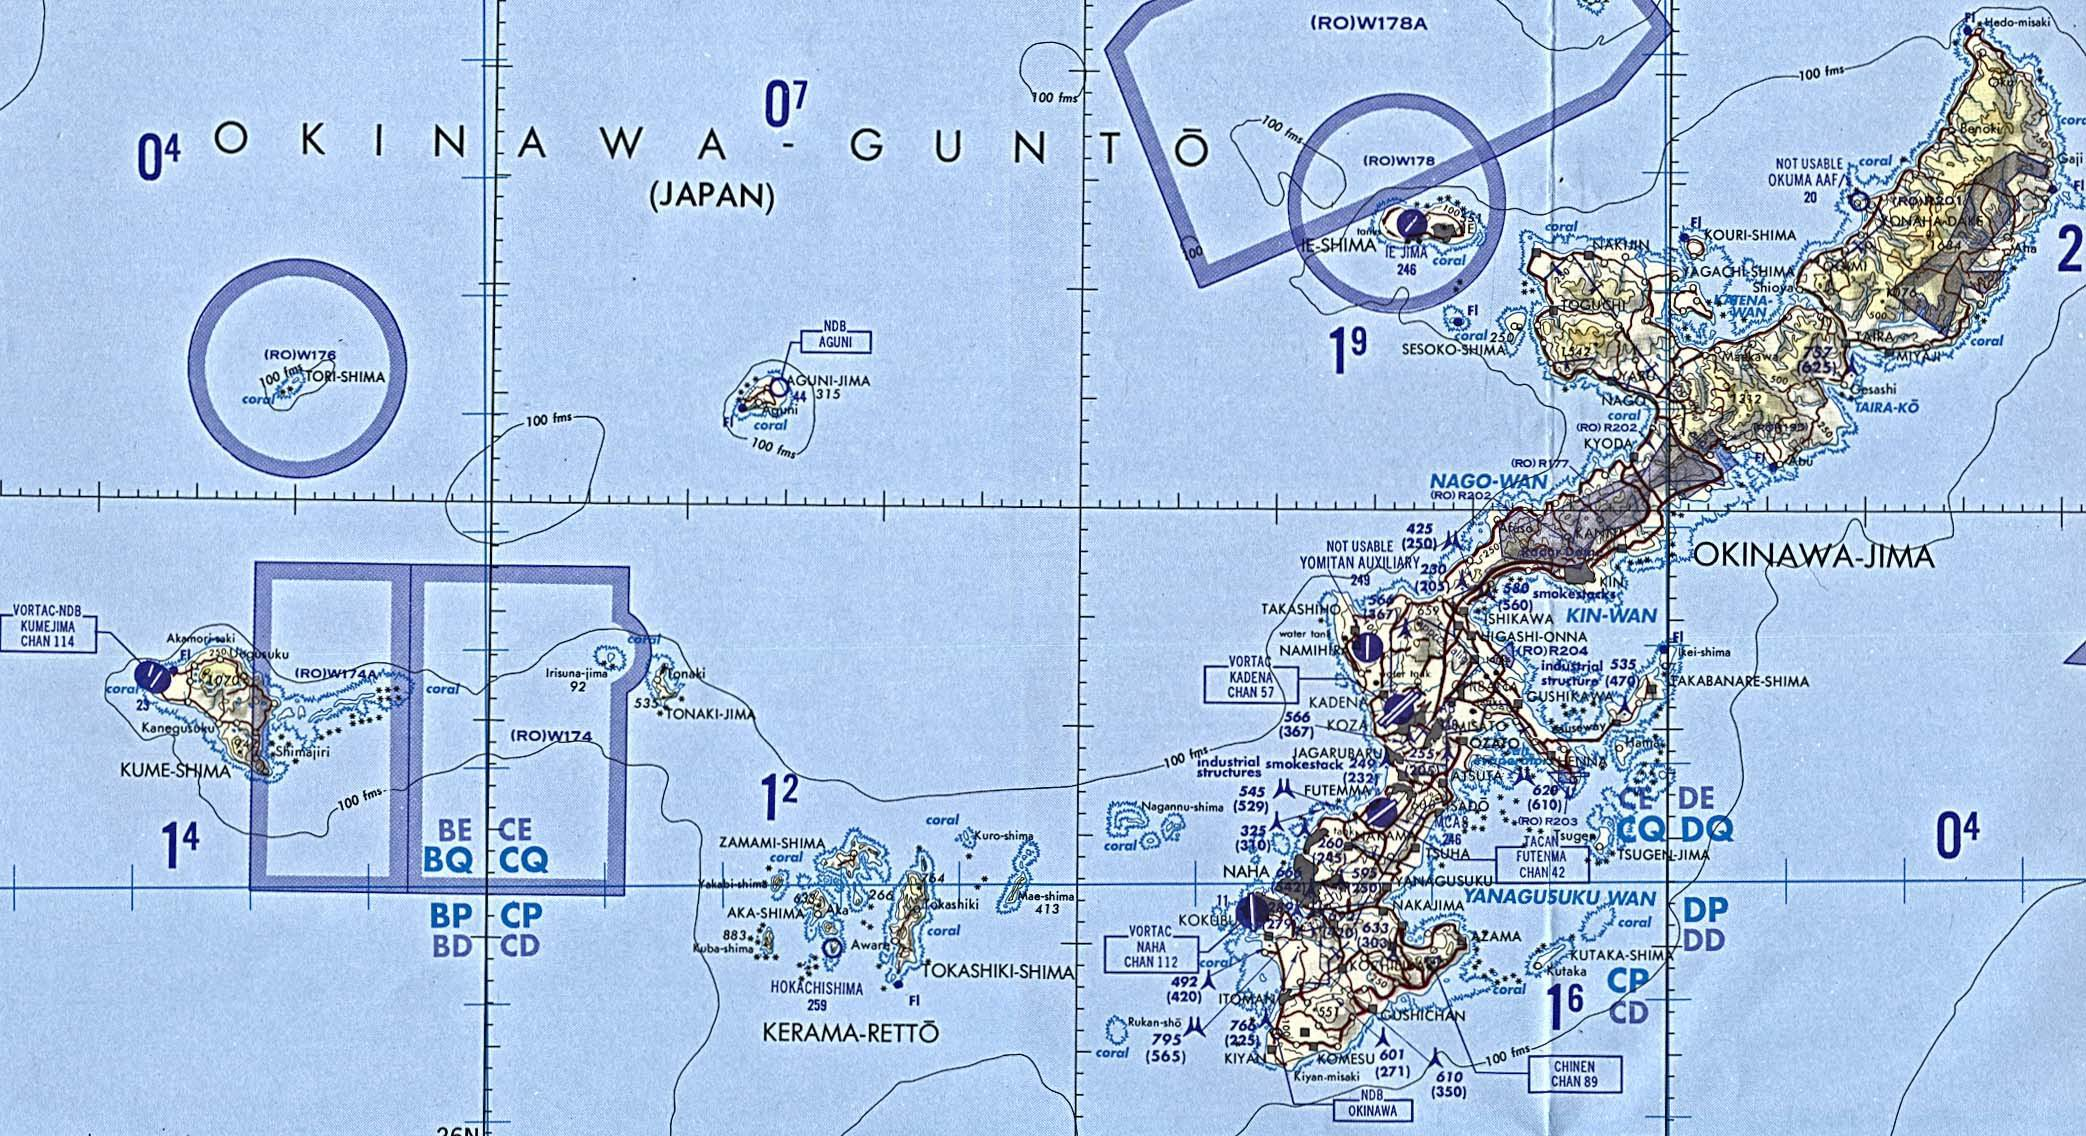 Okinawa - Tactical Pilotage Chart original scale 1:500,000. Portion of National Imagery and Mapping Agency TPC H-13D 1998 Not for navigational use